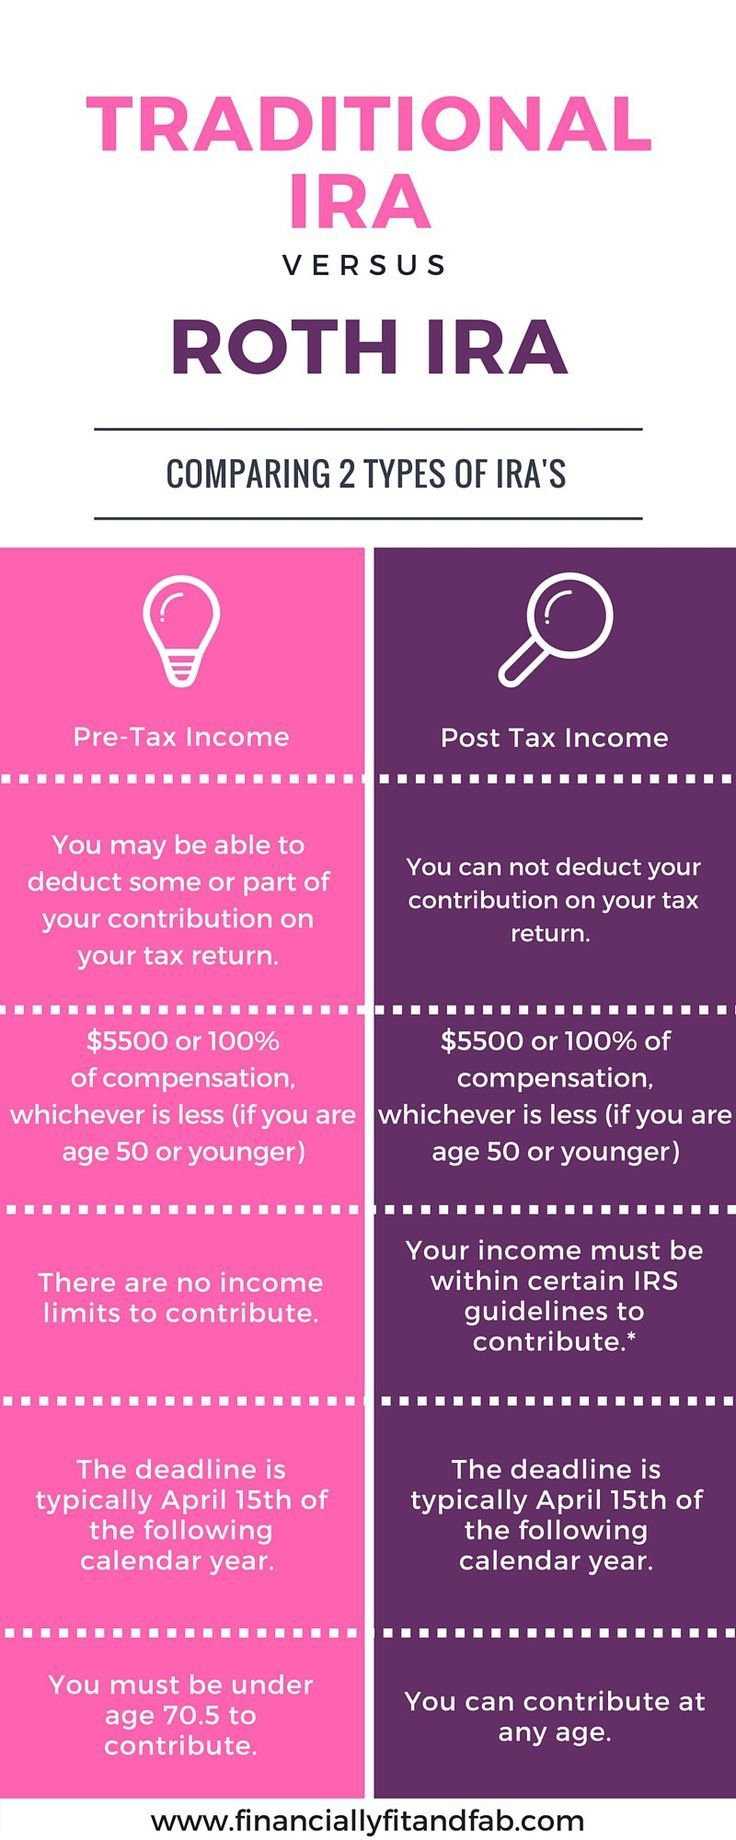 Determining if a traditional or roth ira is right for you ca be tough. You need to know the facts to make an educated decision about investing for your future retirement.